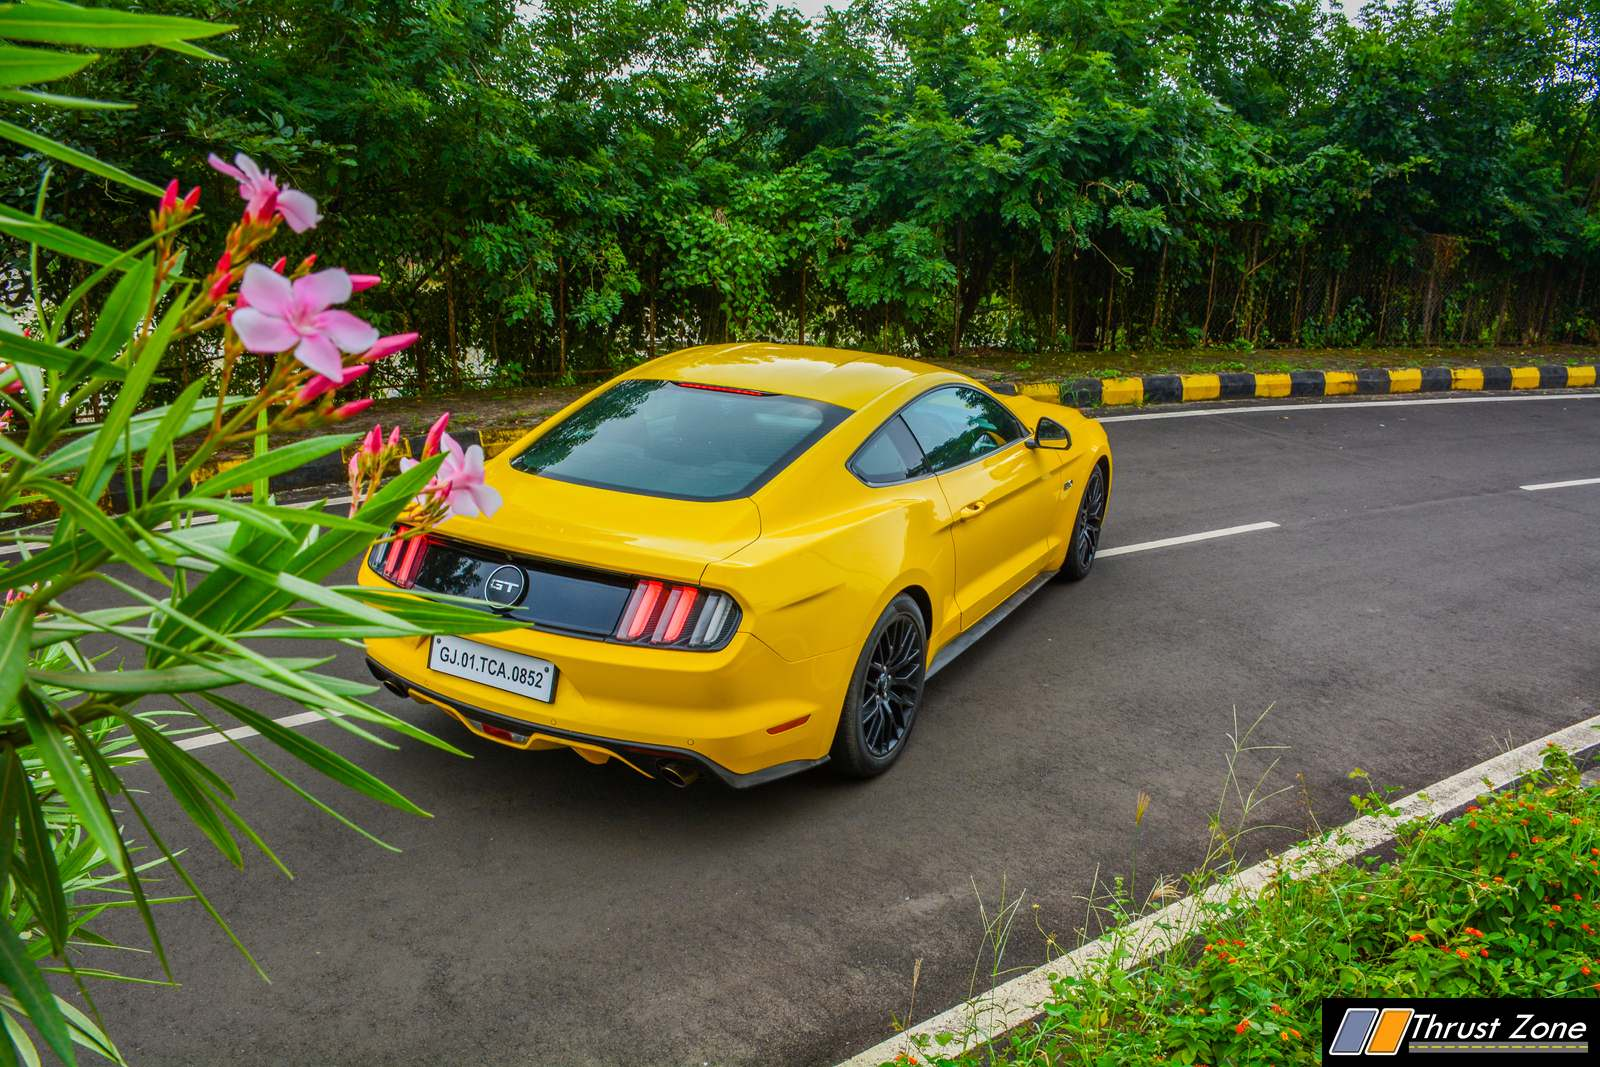 https://www.thrustzone.com/wp-content/uploads/2018/09/Ford-Mustang-India-V8-Review-23.jpg